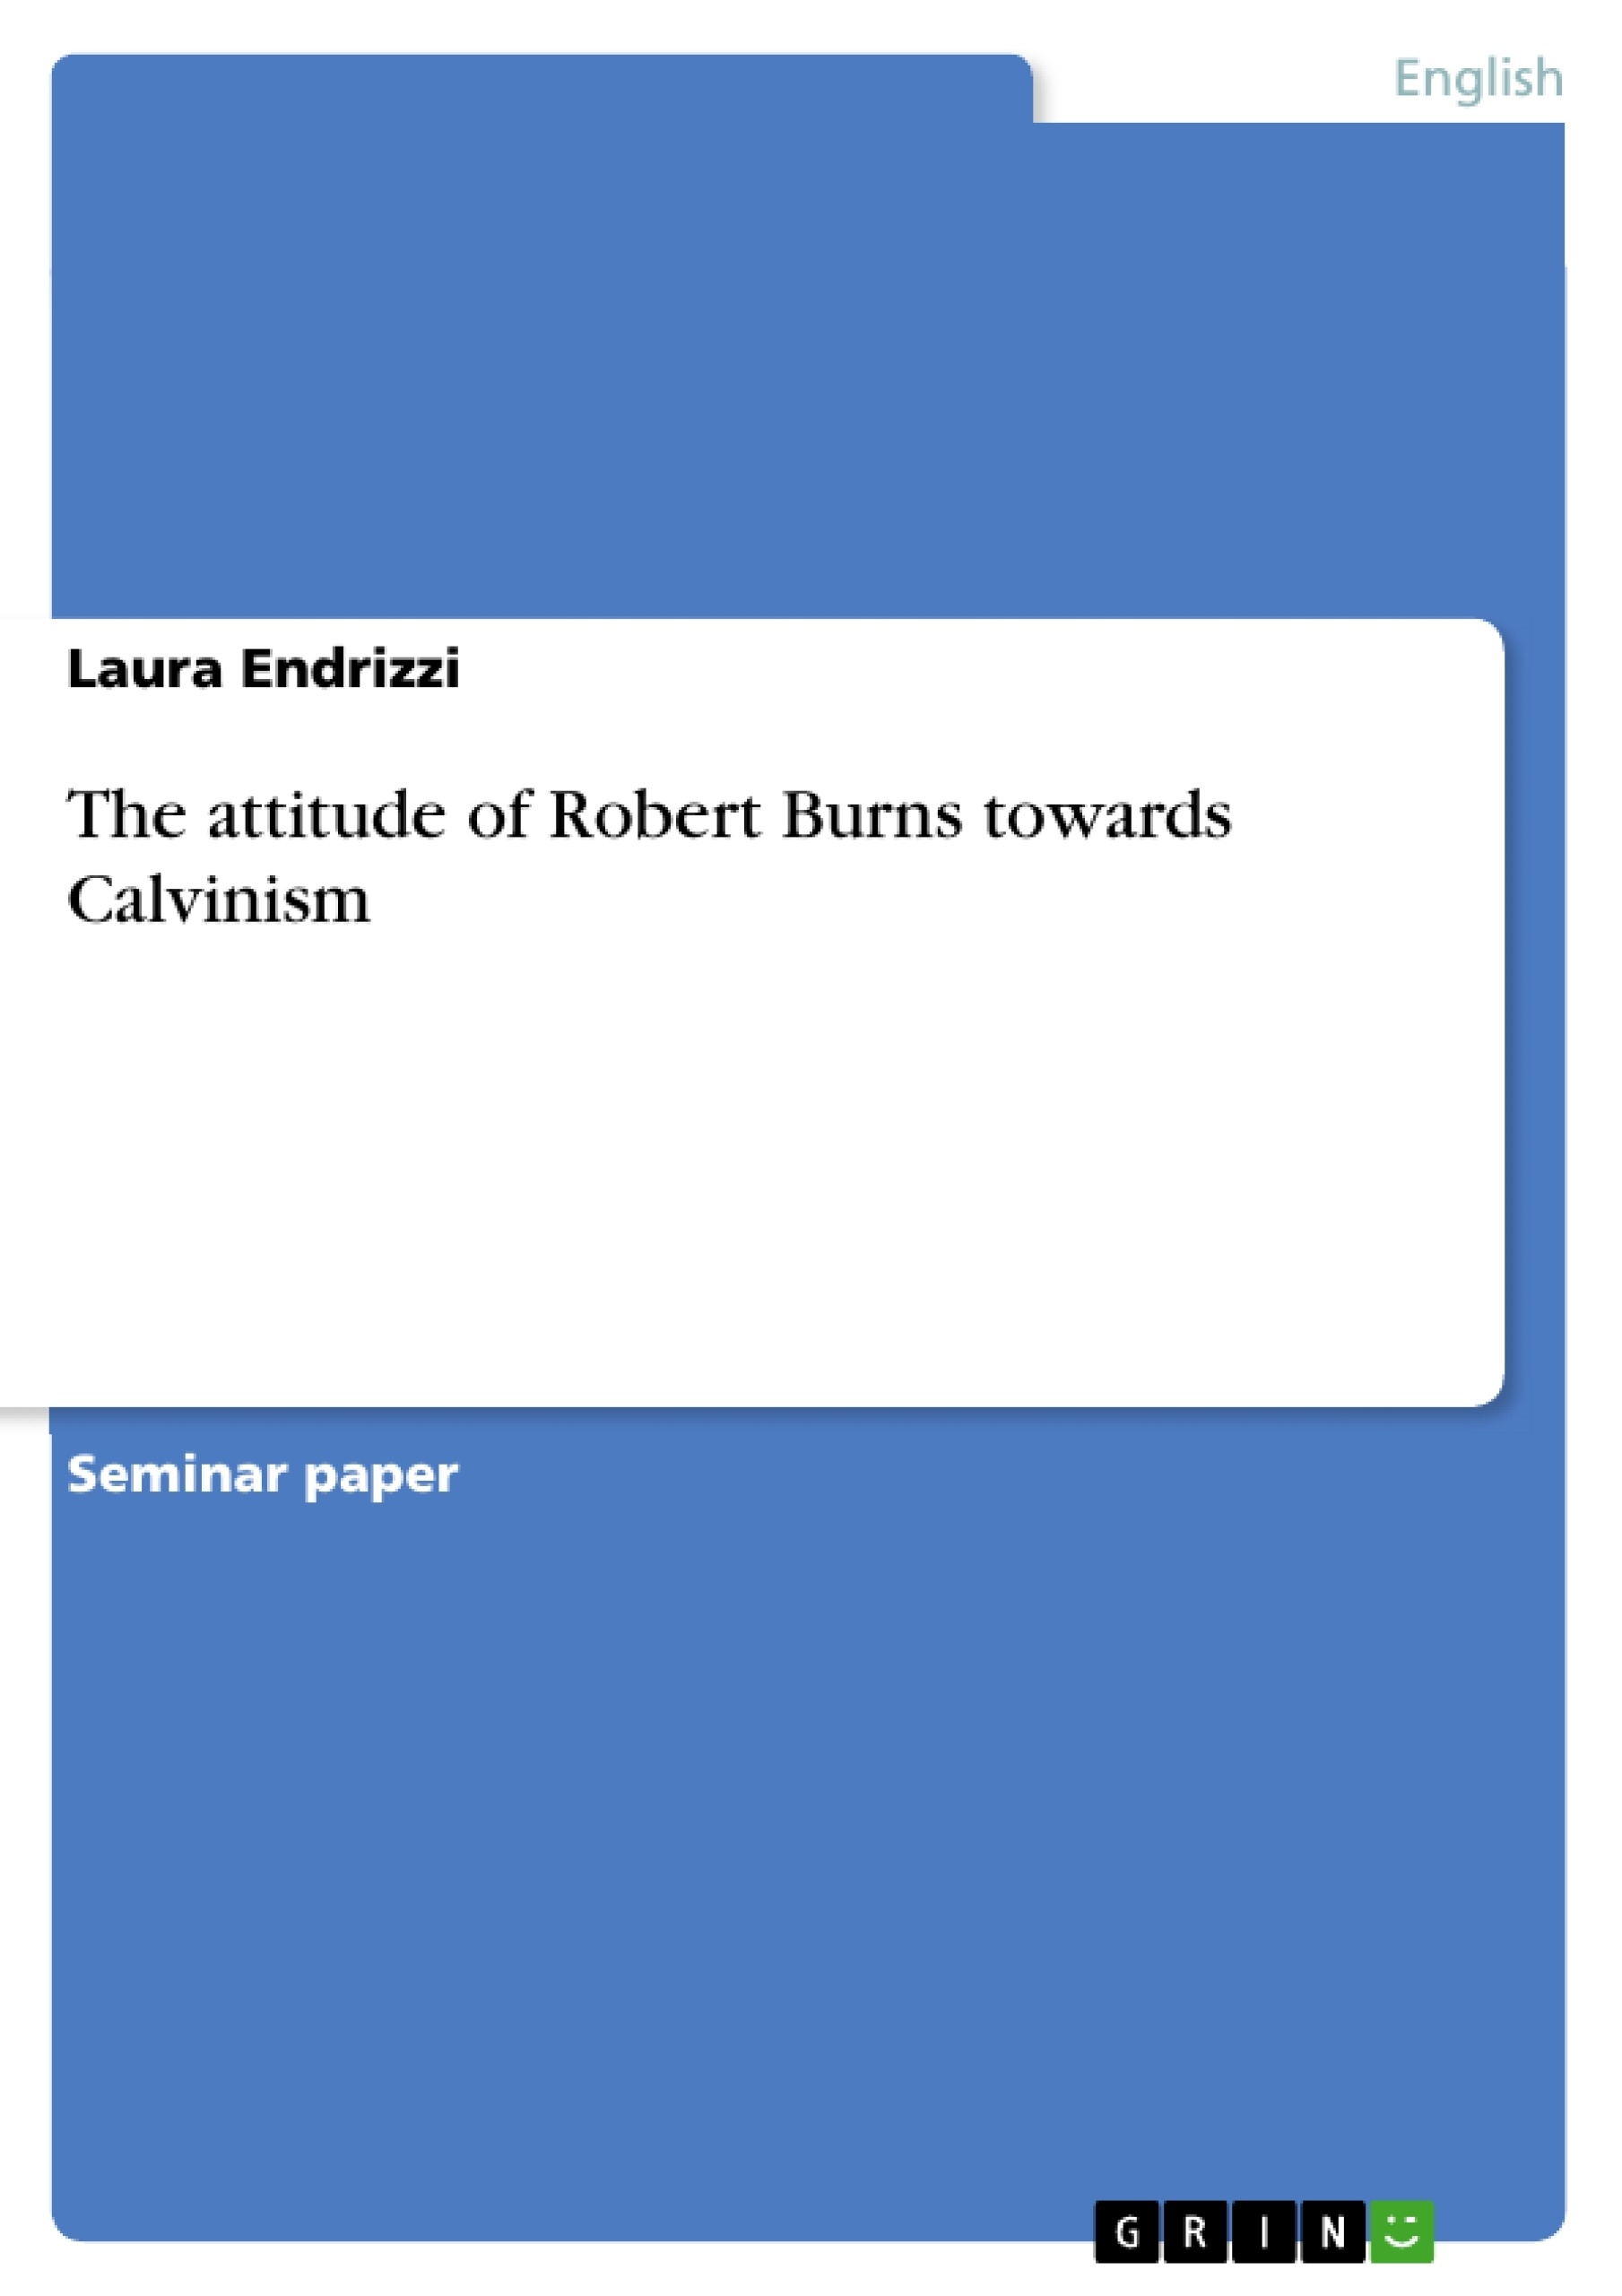 Title: The attitude of Robert Burns towards Calvinism